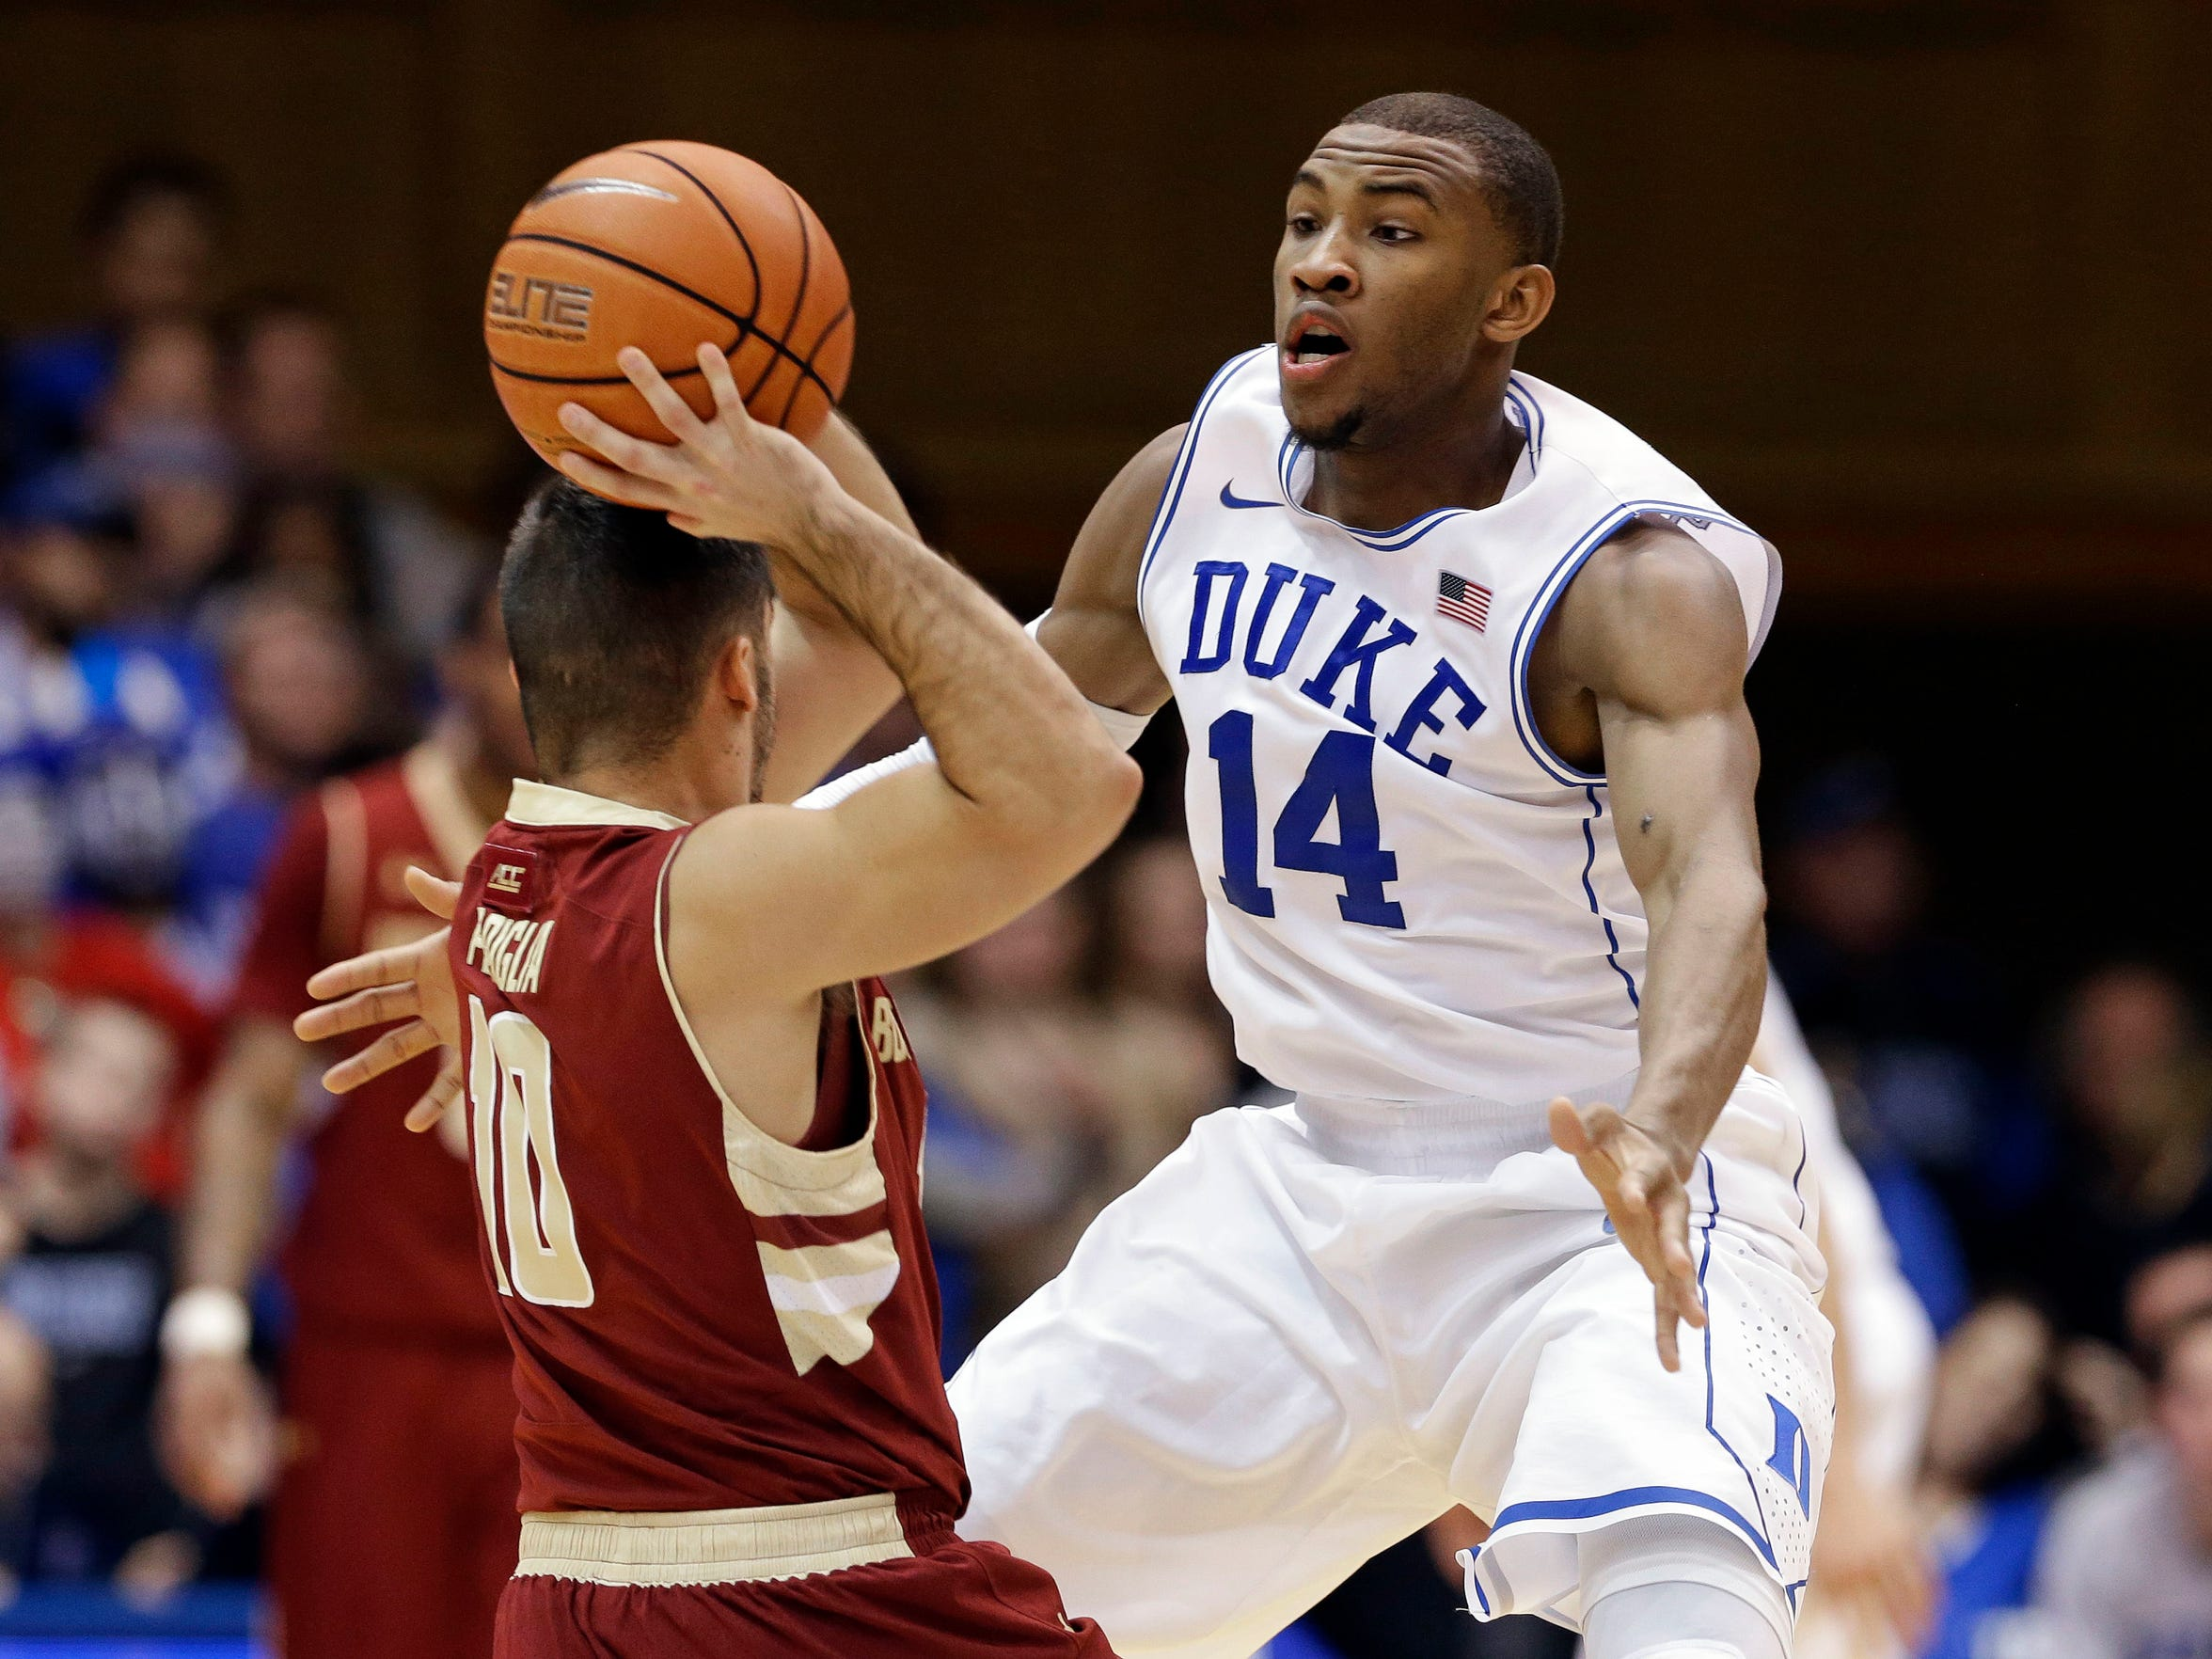 Rasheed Sulaimon, right, was dismissed from the Duke